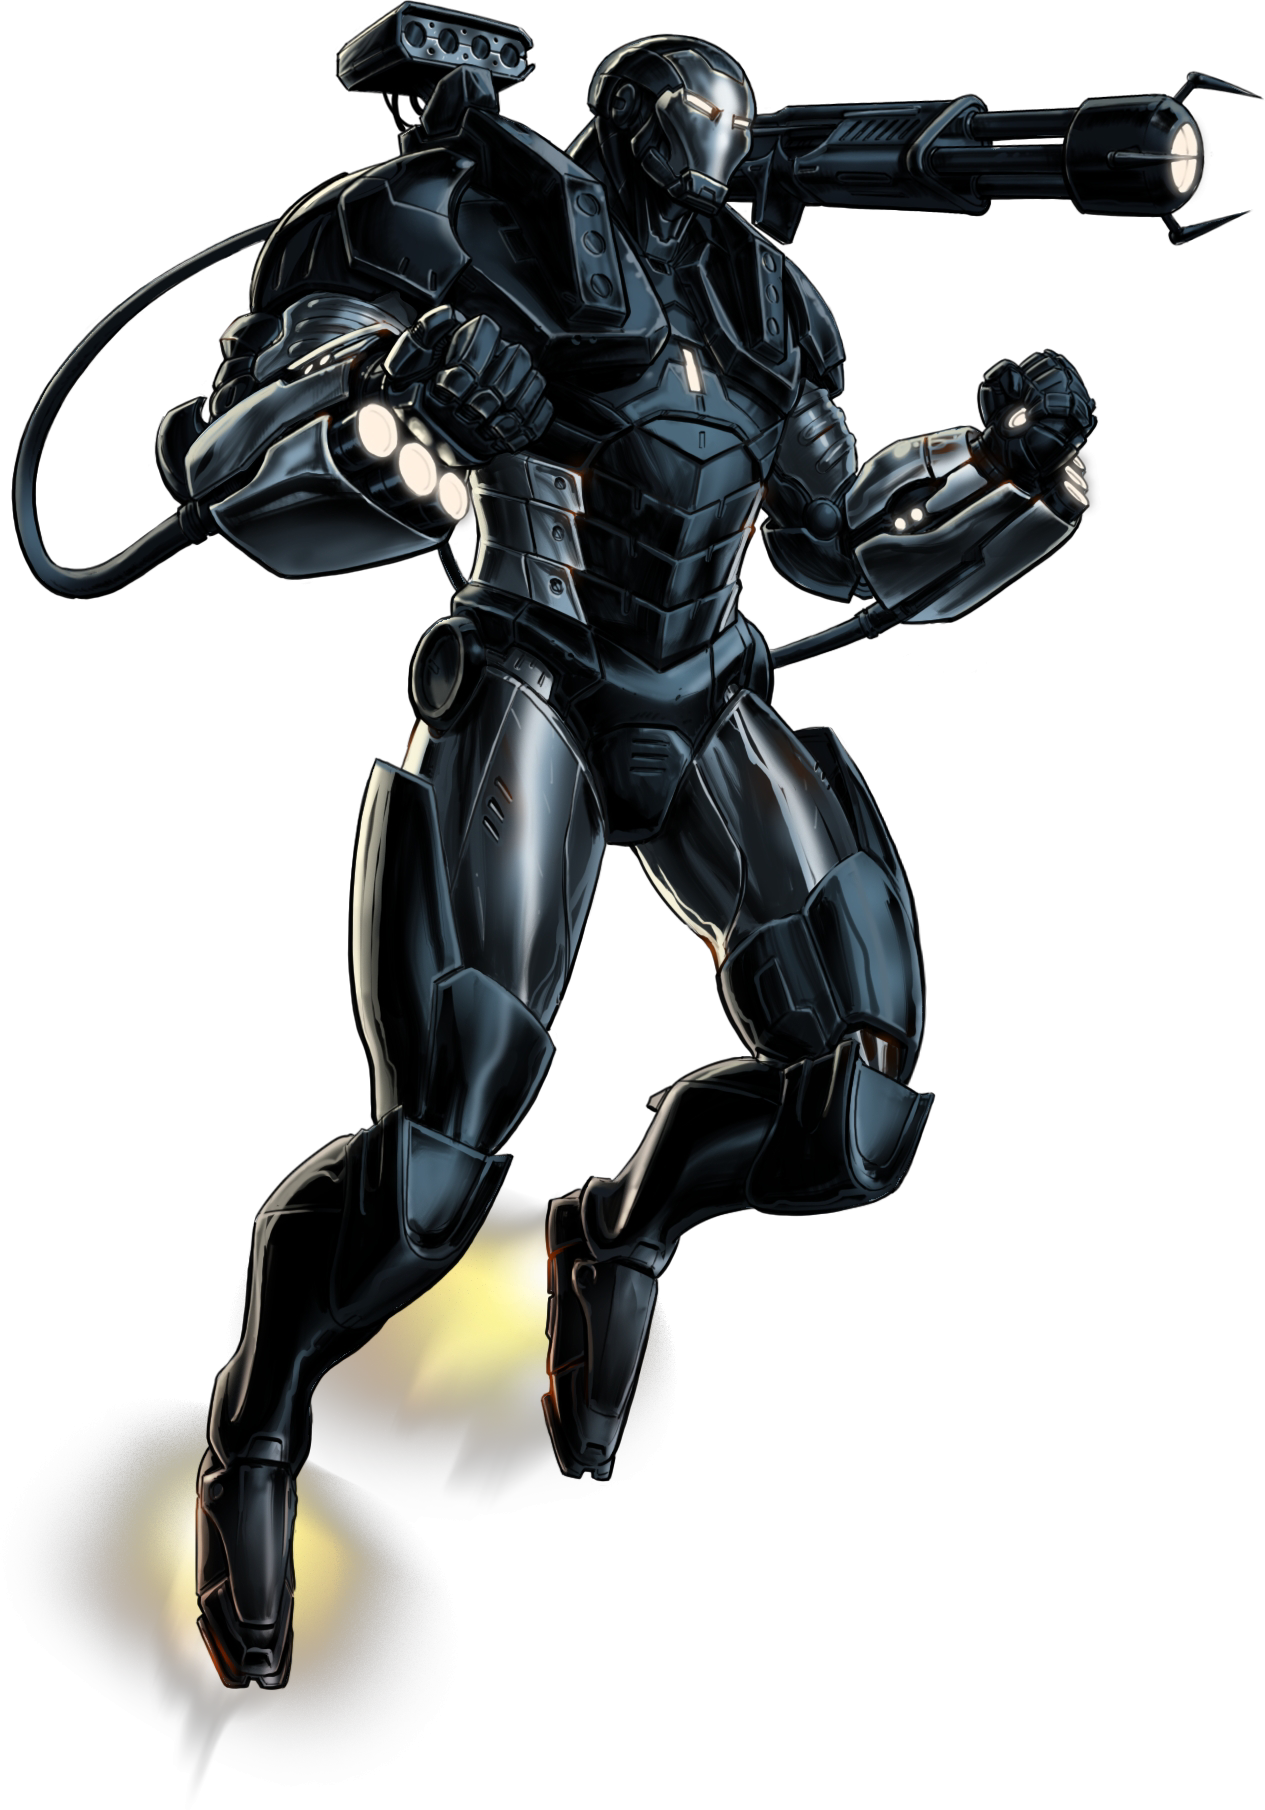 U S War Machine Parnell Jacobs War Machine Marvel Avengers